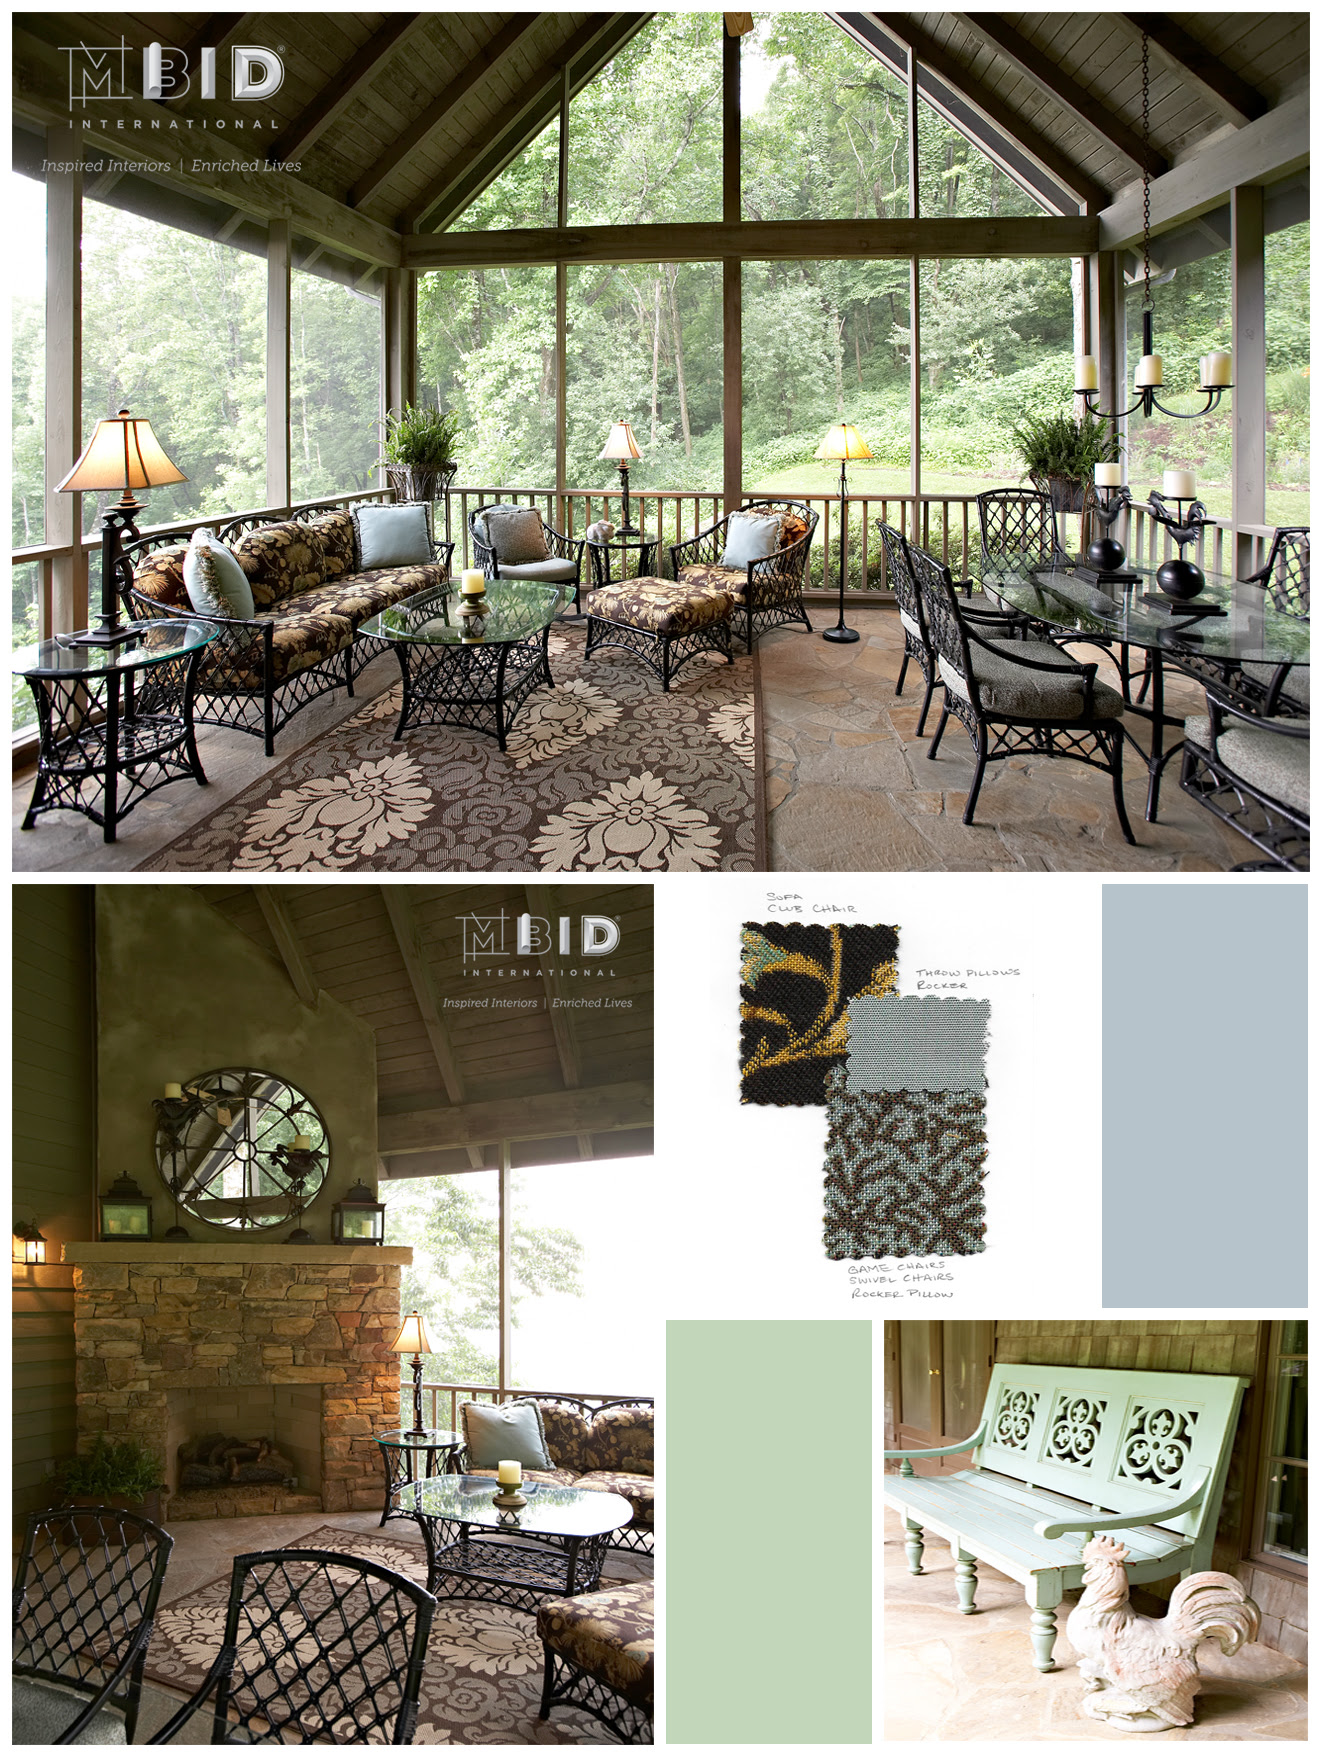 Outdoor Living Screened In Patio Design North Carolina Vacation Home Decor Mbid International